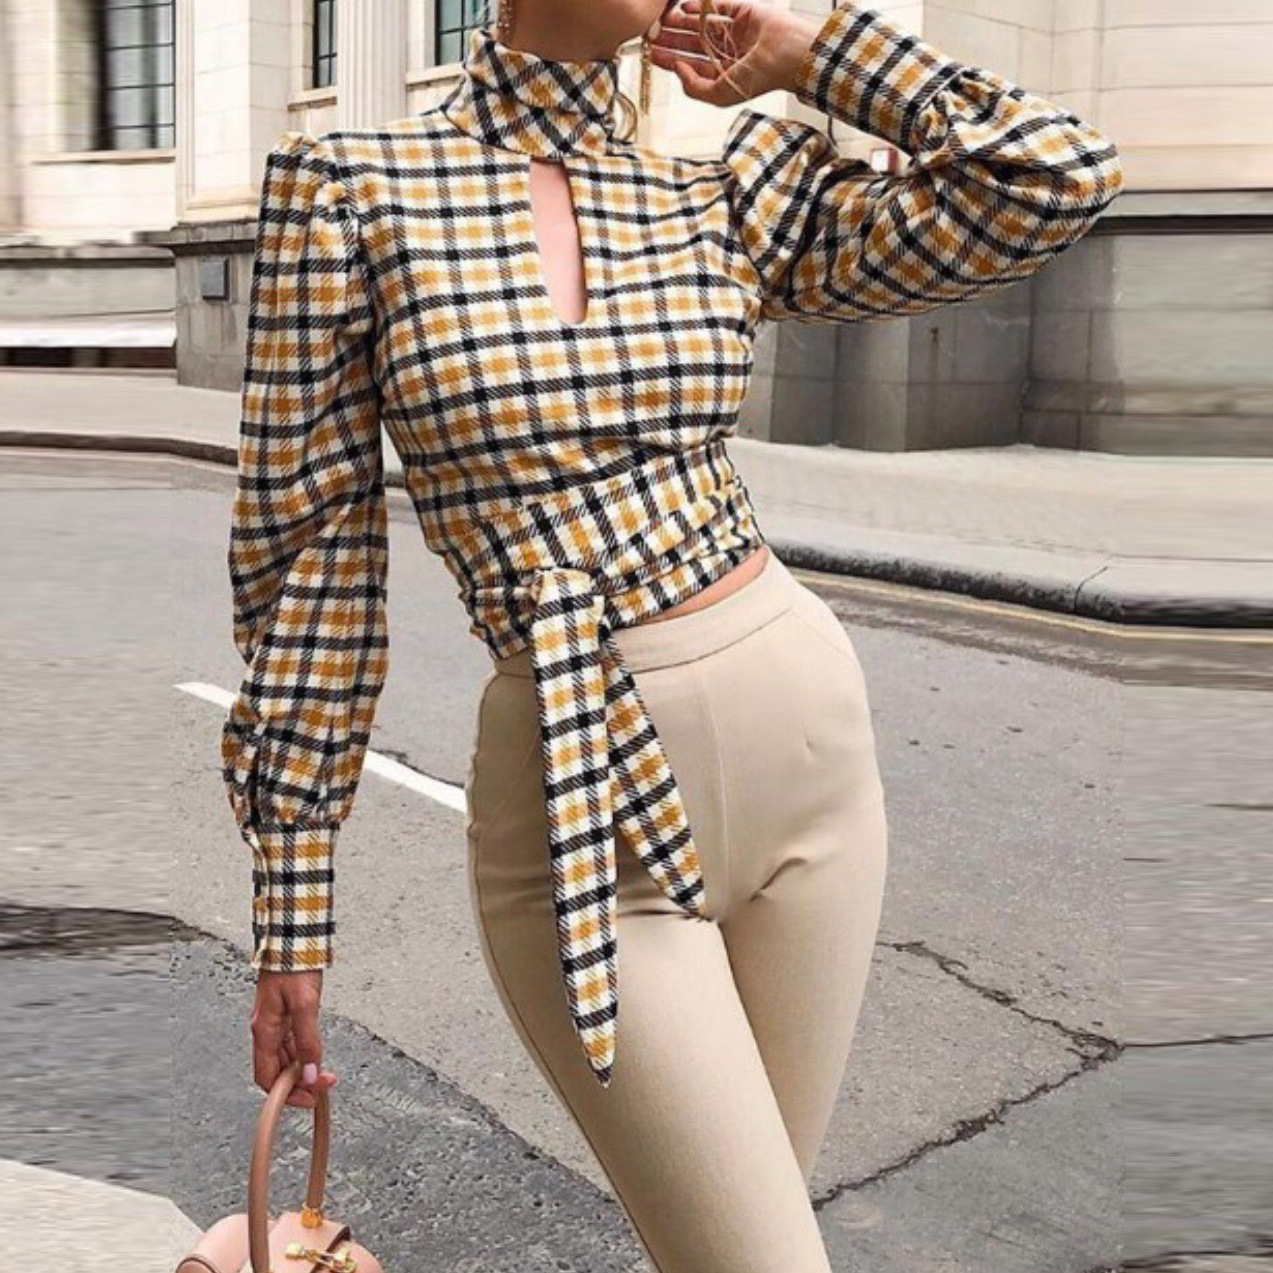 Goocheer Autumn New Long-Sleeved Sexy Backless Fashion Wild Woman Plaid Shirt Hollow Out T-shirt